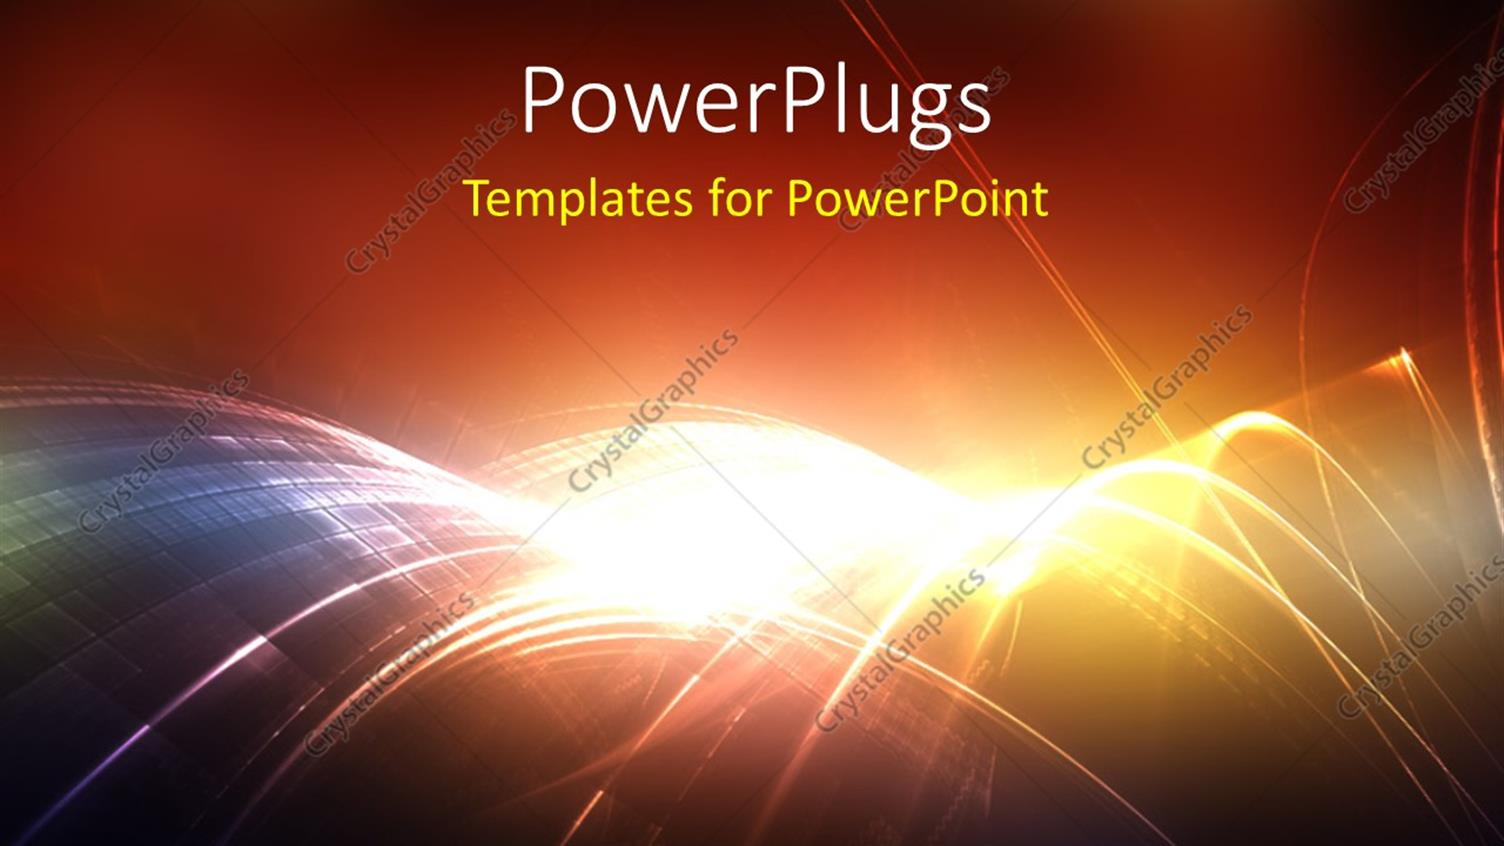 PowerPoint Template Displaying Digital Abstract Background with Rays